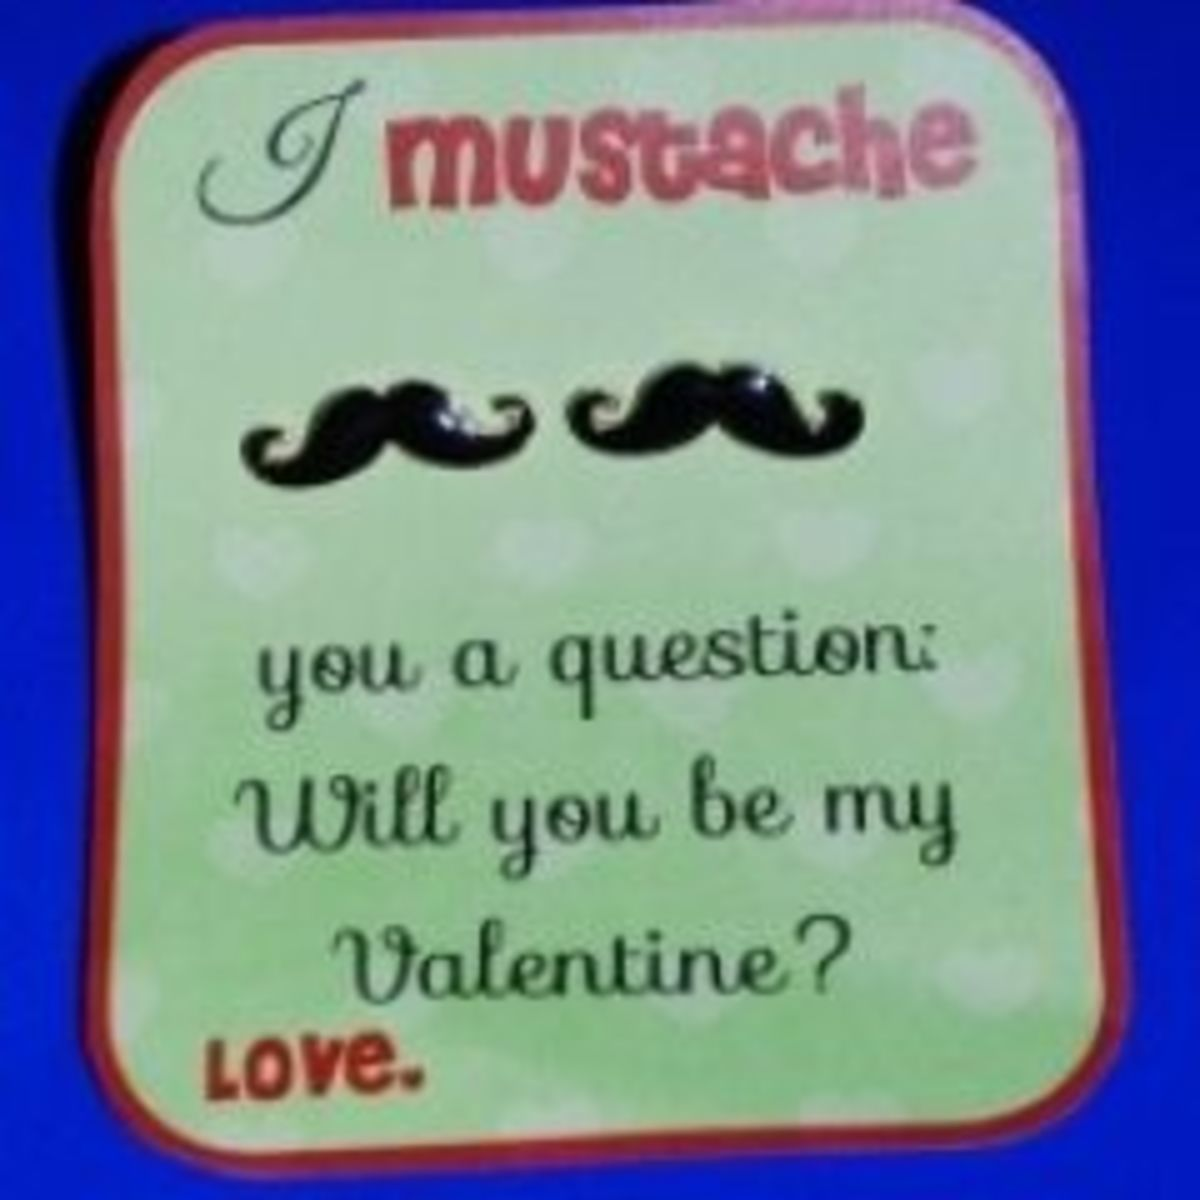 Are you a fan of the mustache craze that's sweeping the nation?  Here are some fun February ideas you will love.